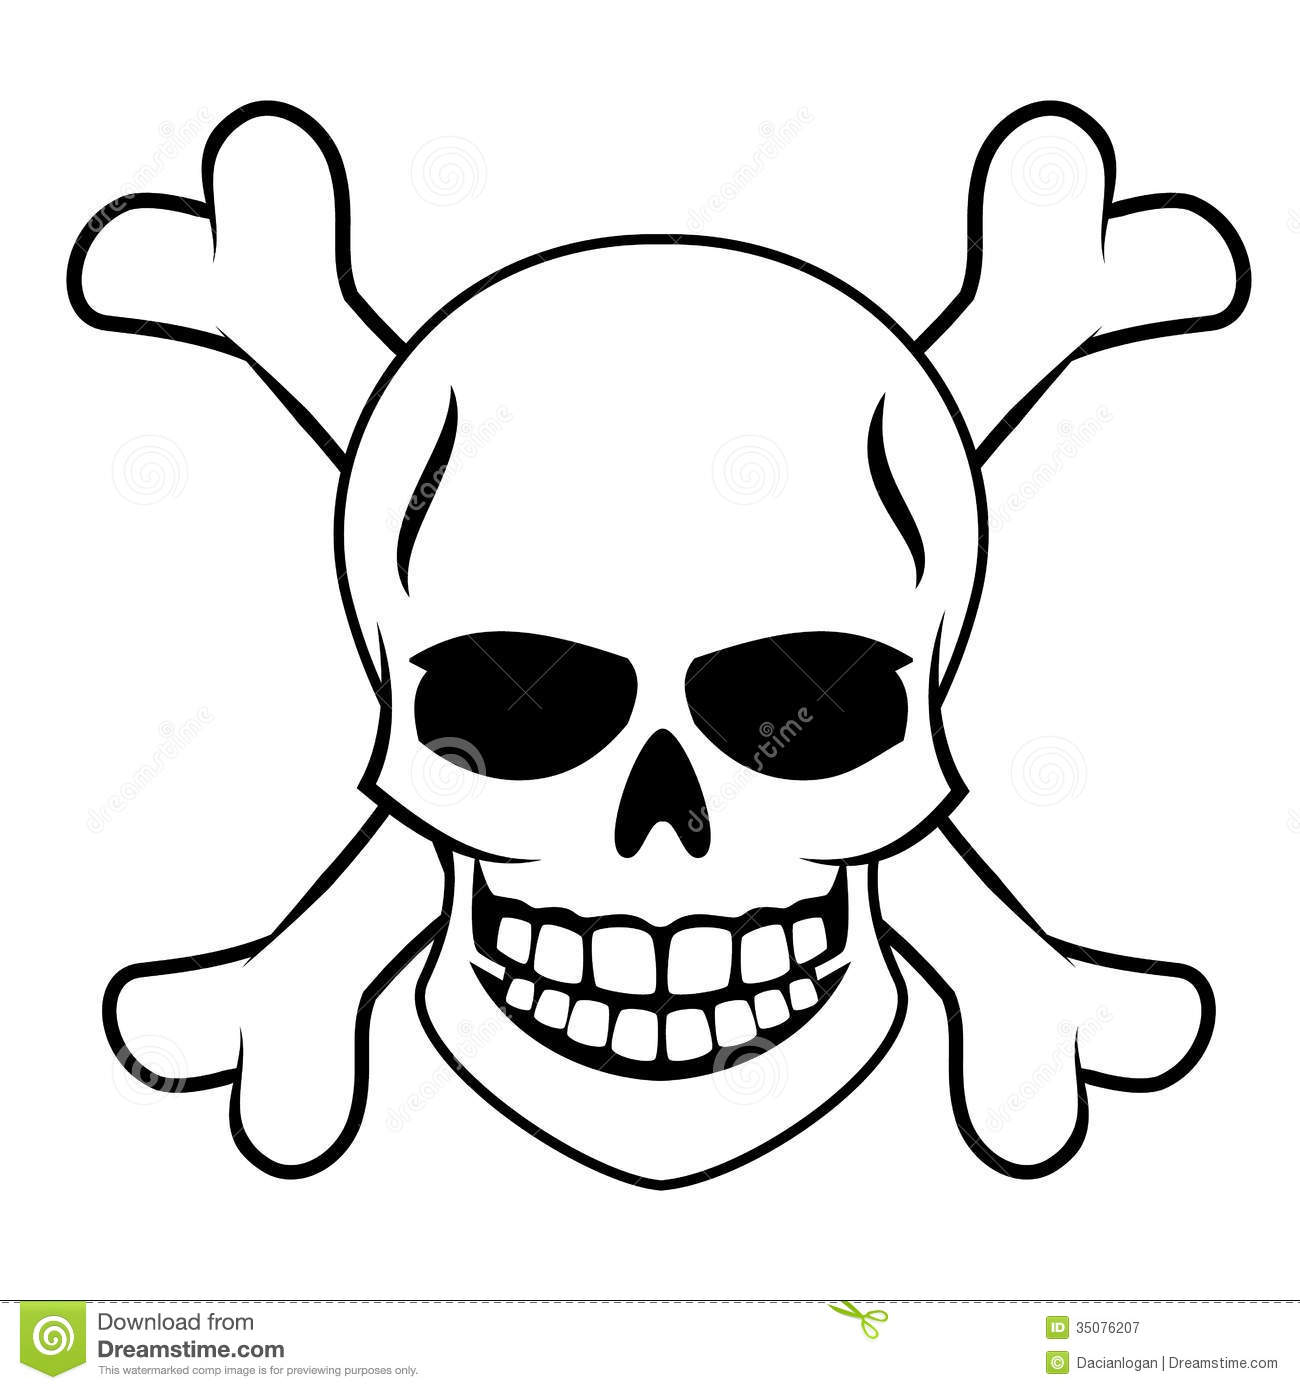 Skull With Crossbones Royalty Free Stock Photography